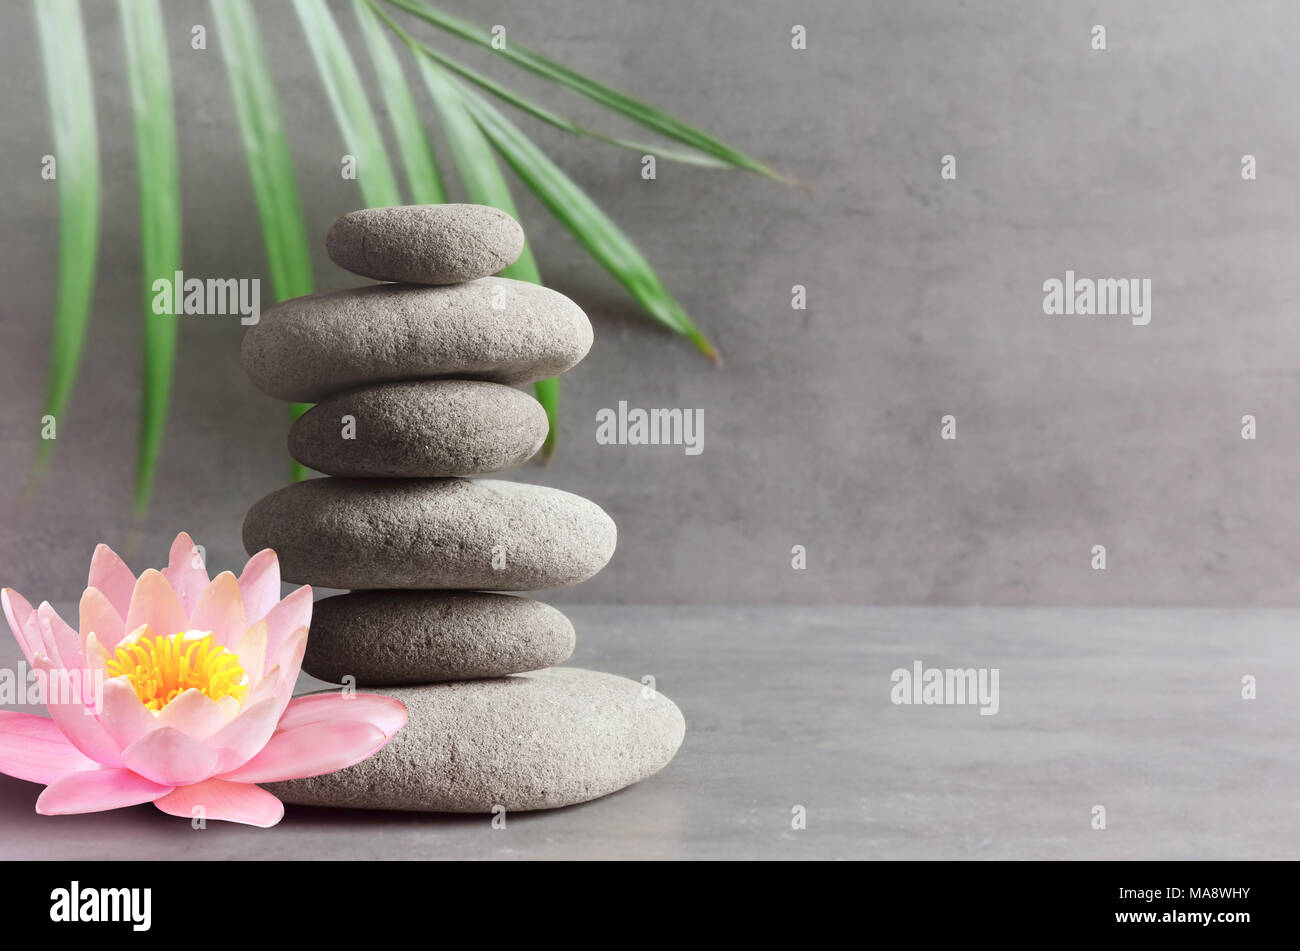 Stones pink flower lotus and green palm leaf balance zen and spa stones pink flower lotus and green palm leaf balance zen and spa concept izmirmasajfo